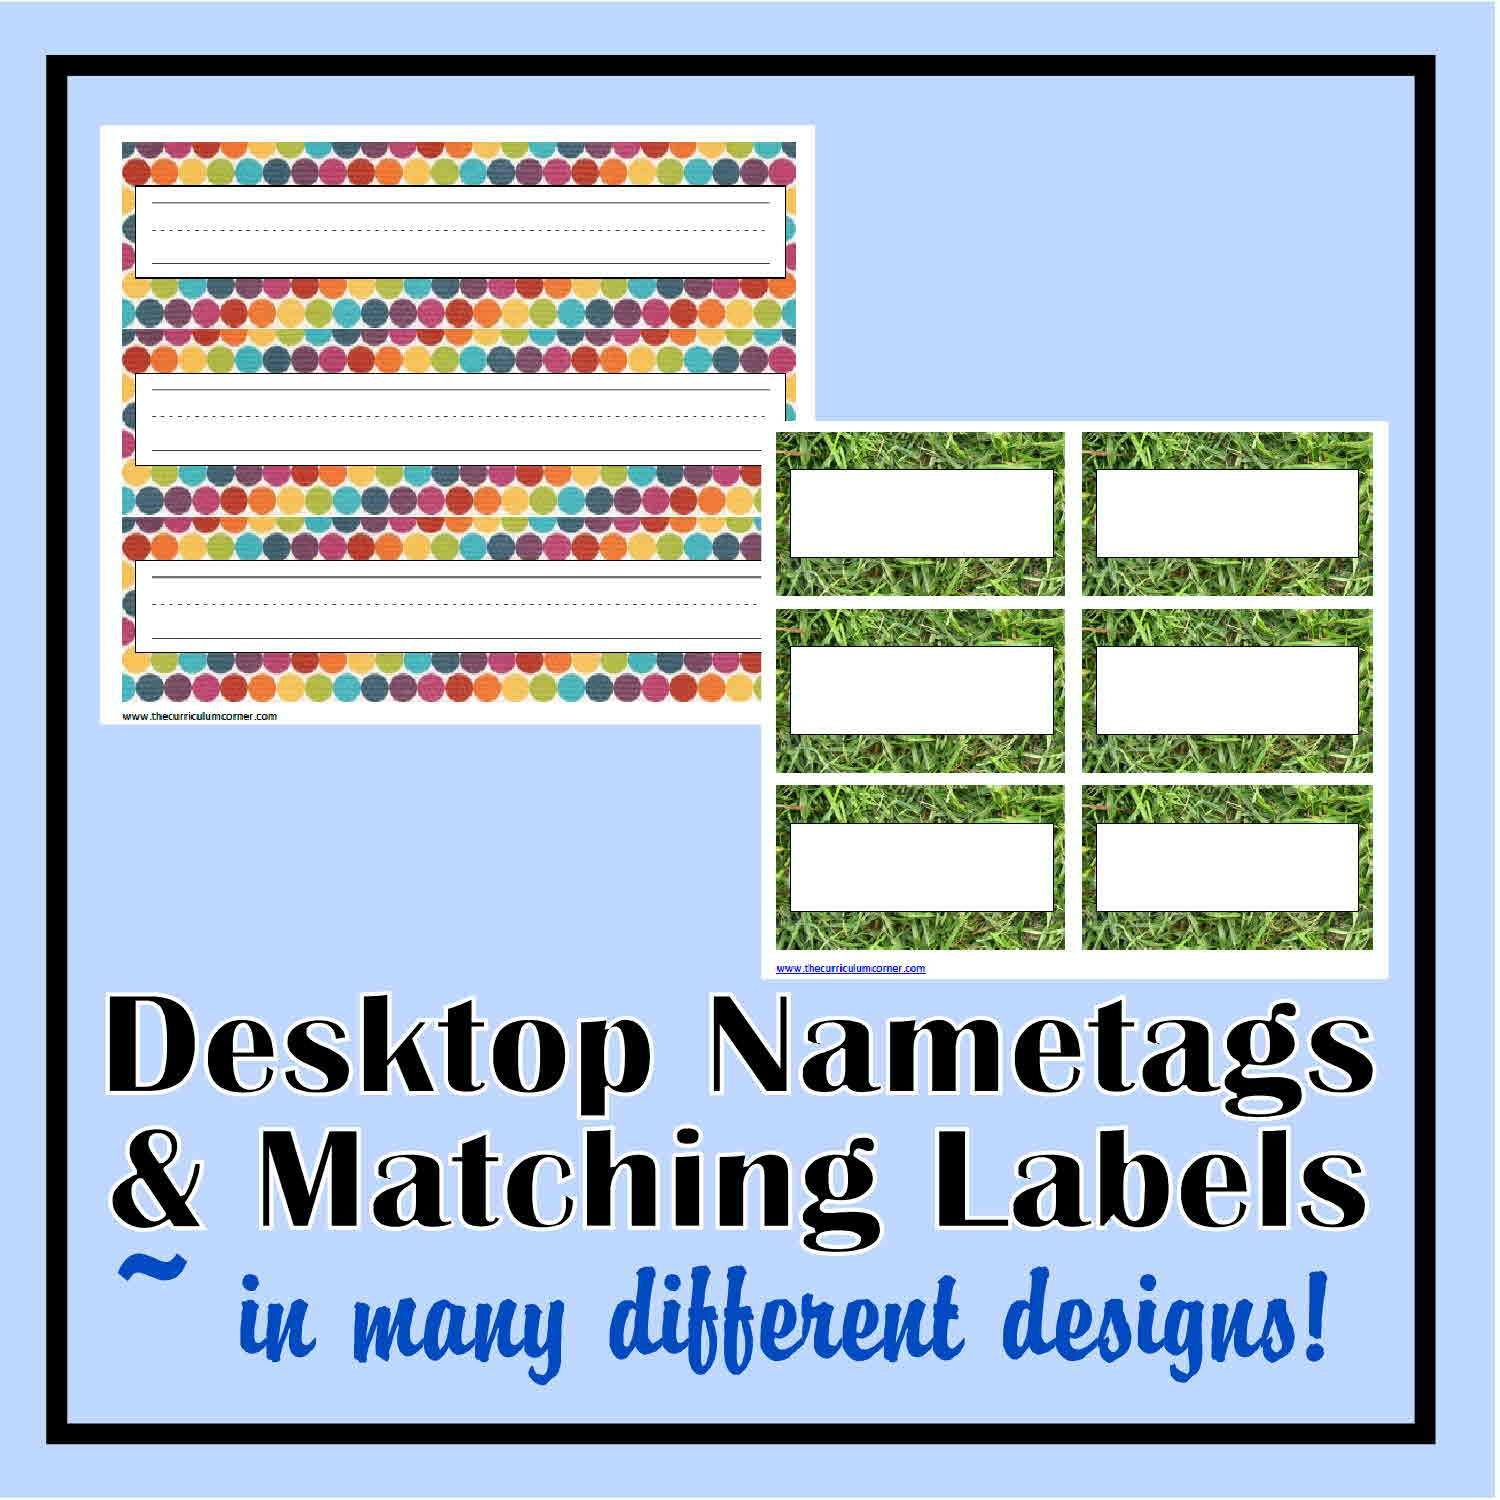 Desk Nametags & Classroom Labels - The Curriculum Corner 123 - Free Printable Name Tags For School Desks